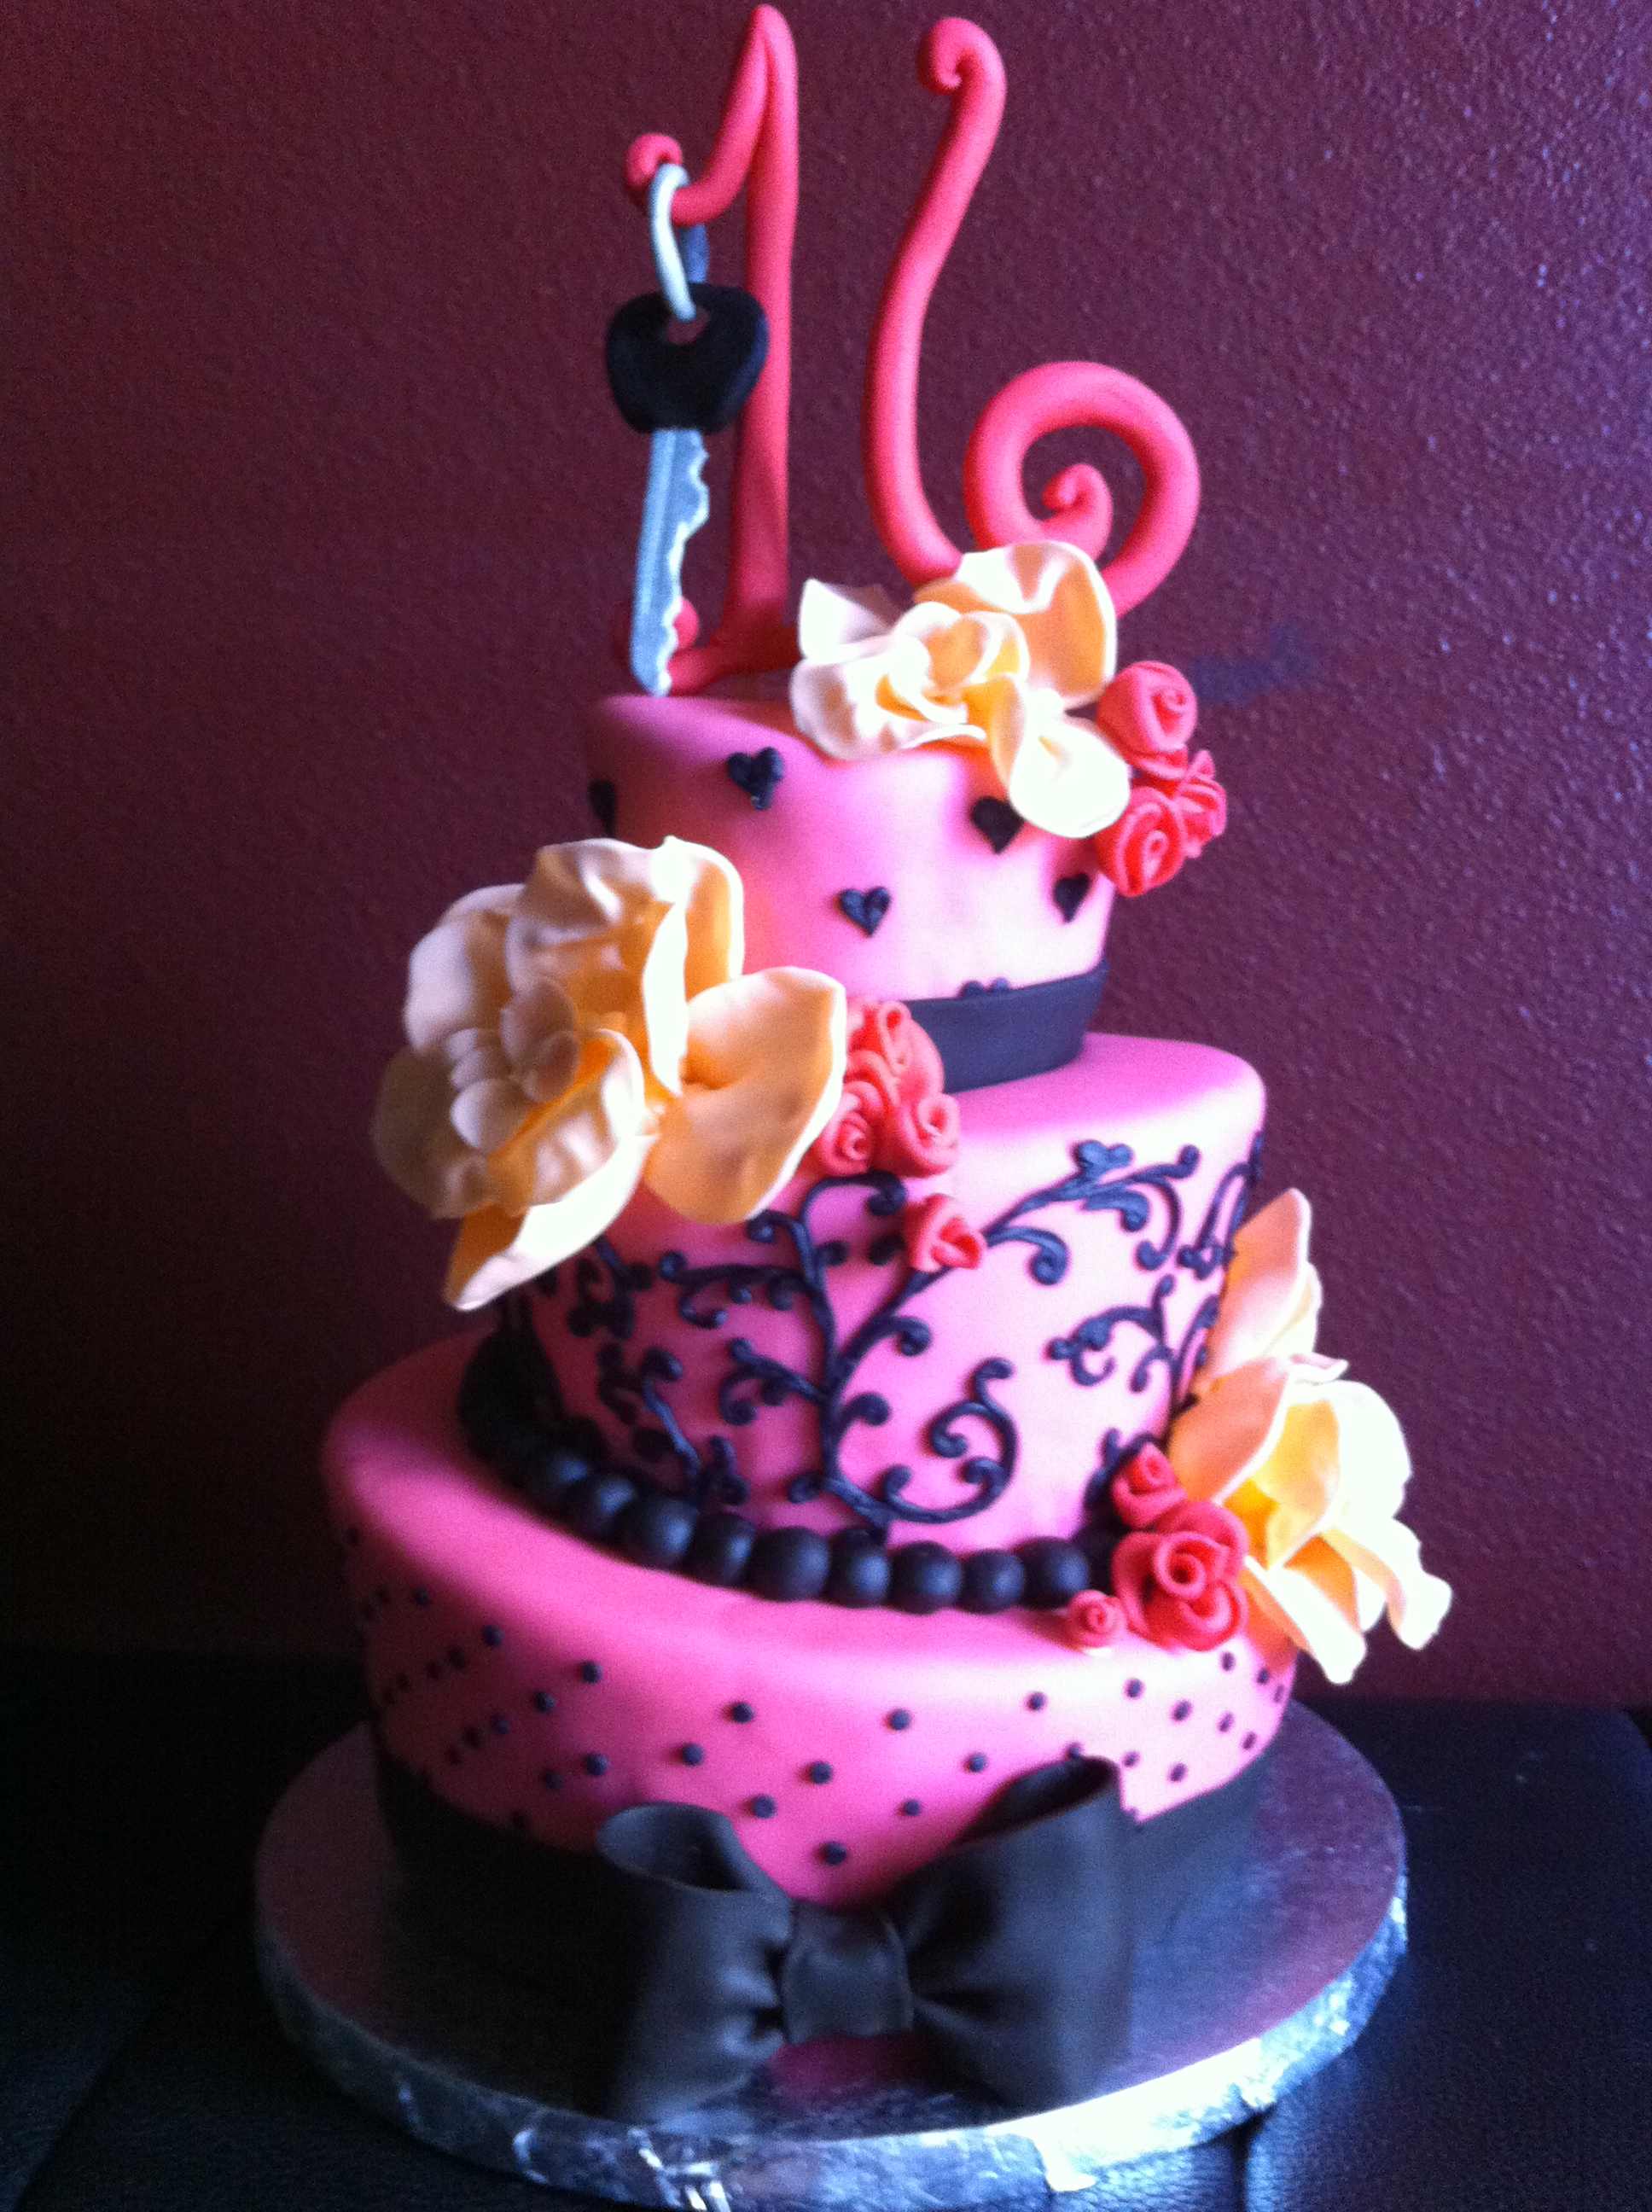 Awesome Bday Cake Images : 20 Super Amazing and Fantastic Cakes - Page 4 of 20